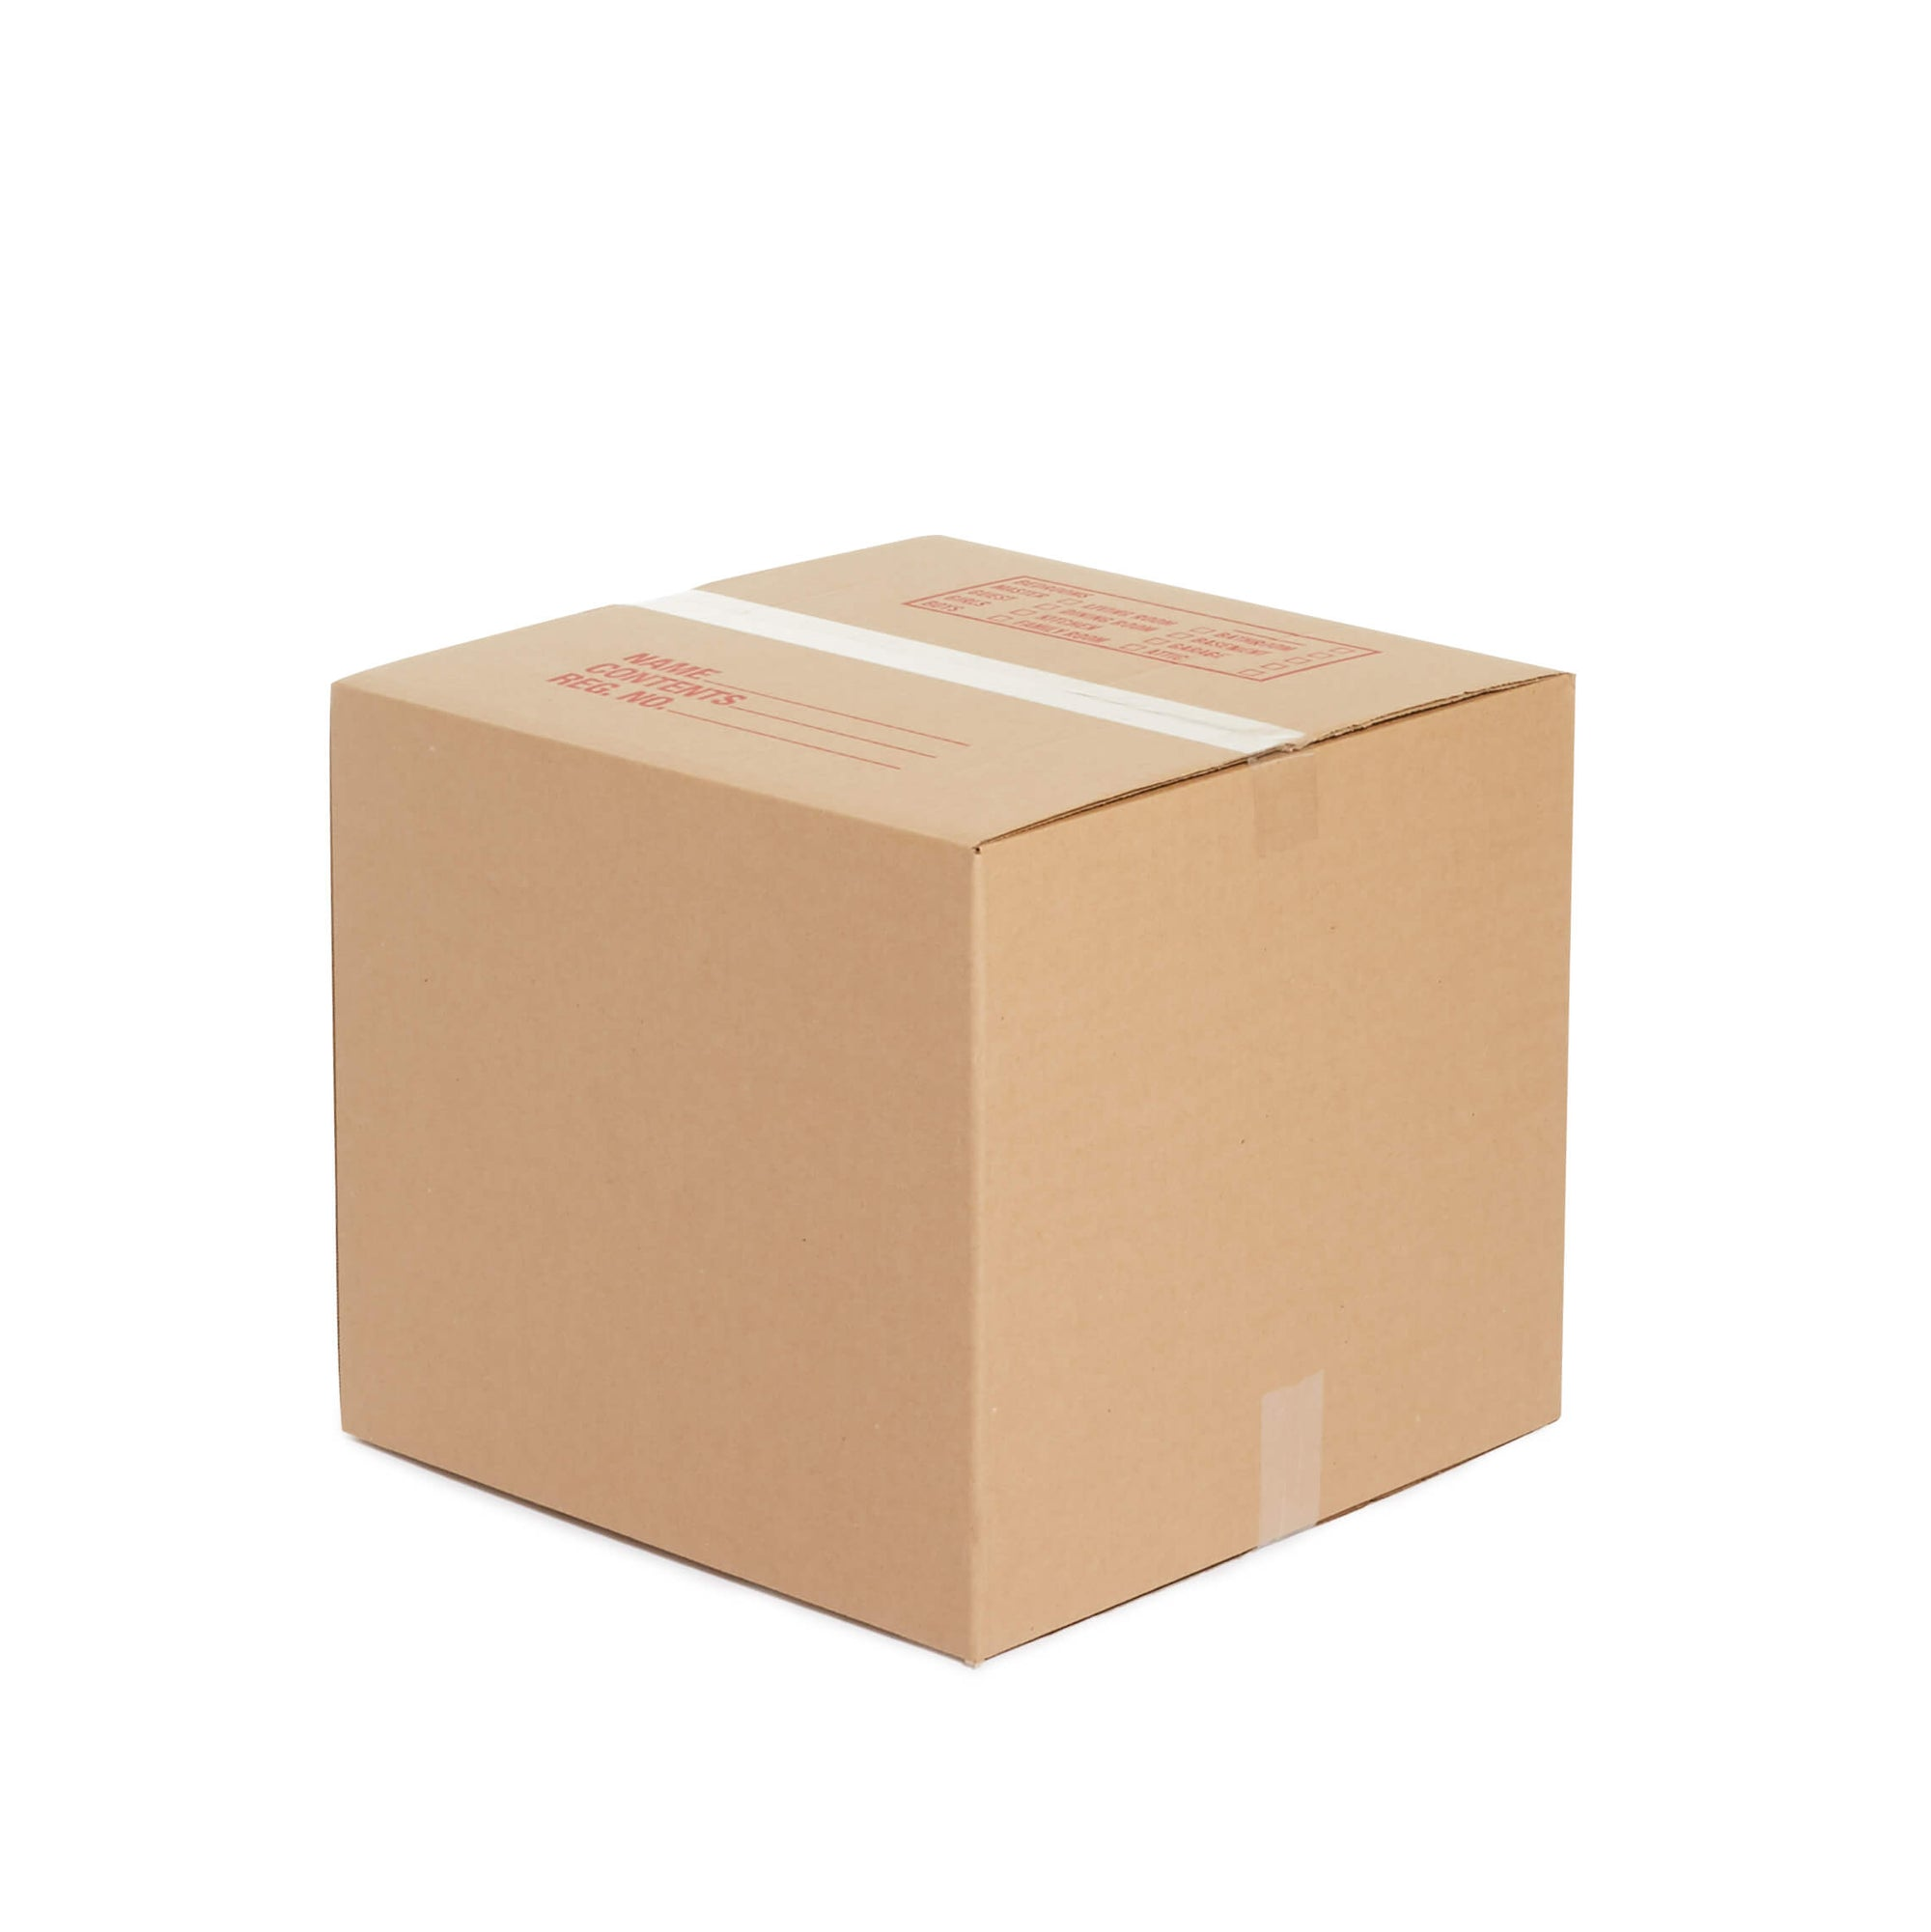 Medium Moving Box - 18″ x 18″ x 16″ Pack of 5